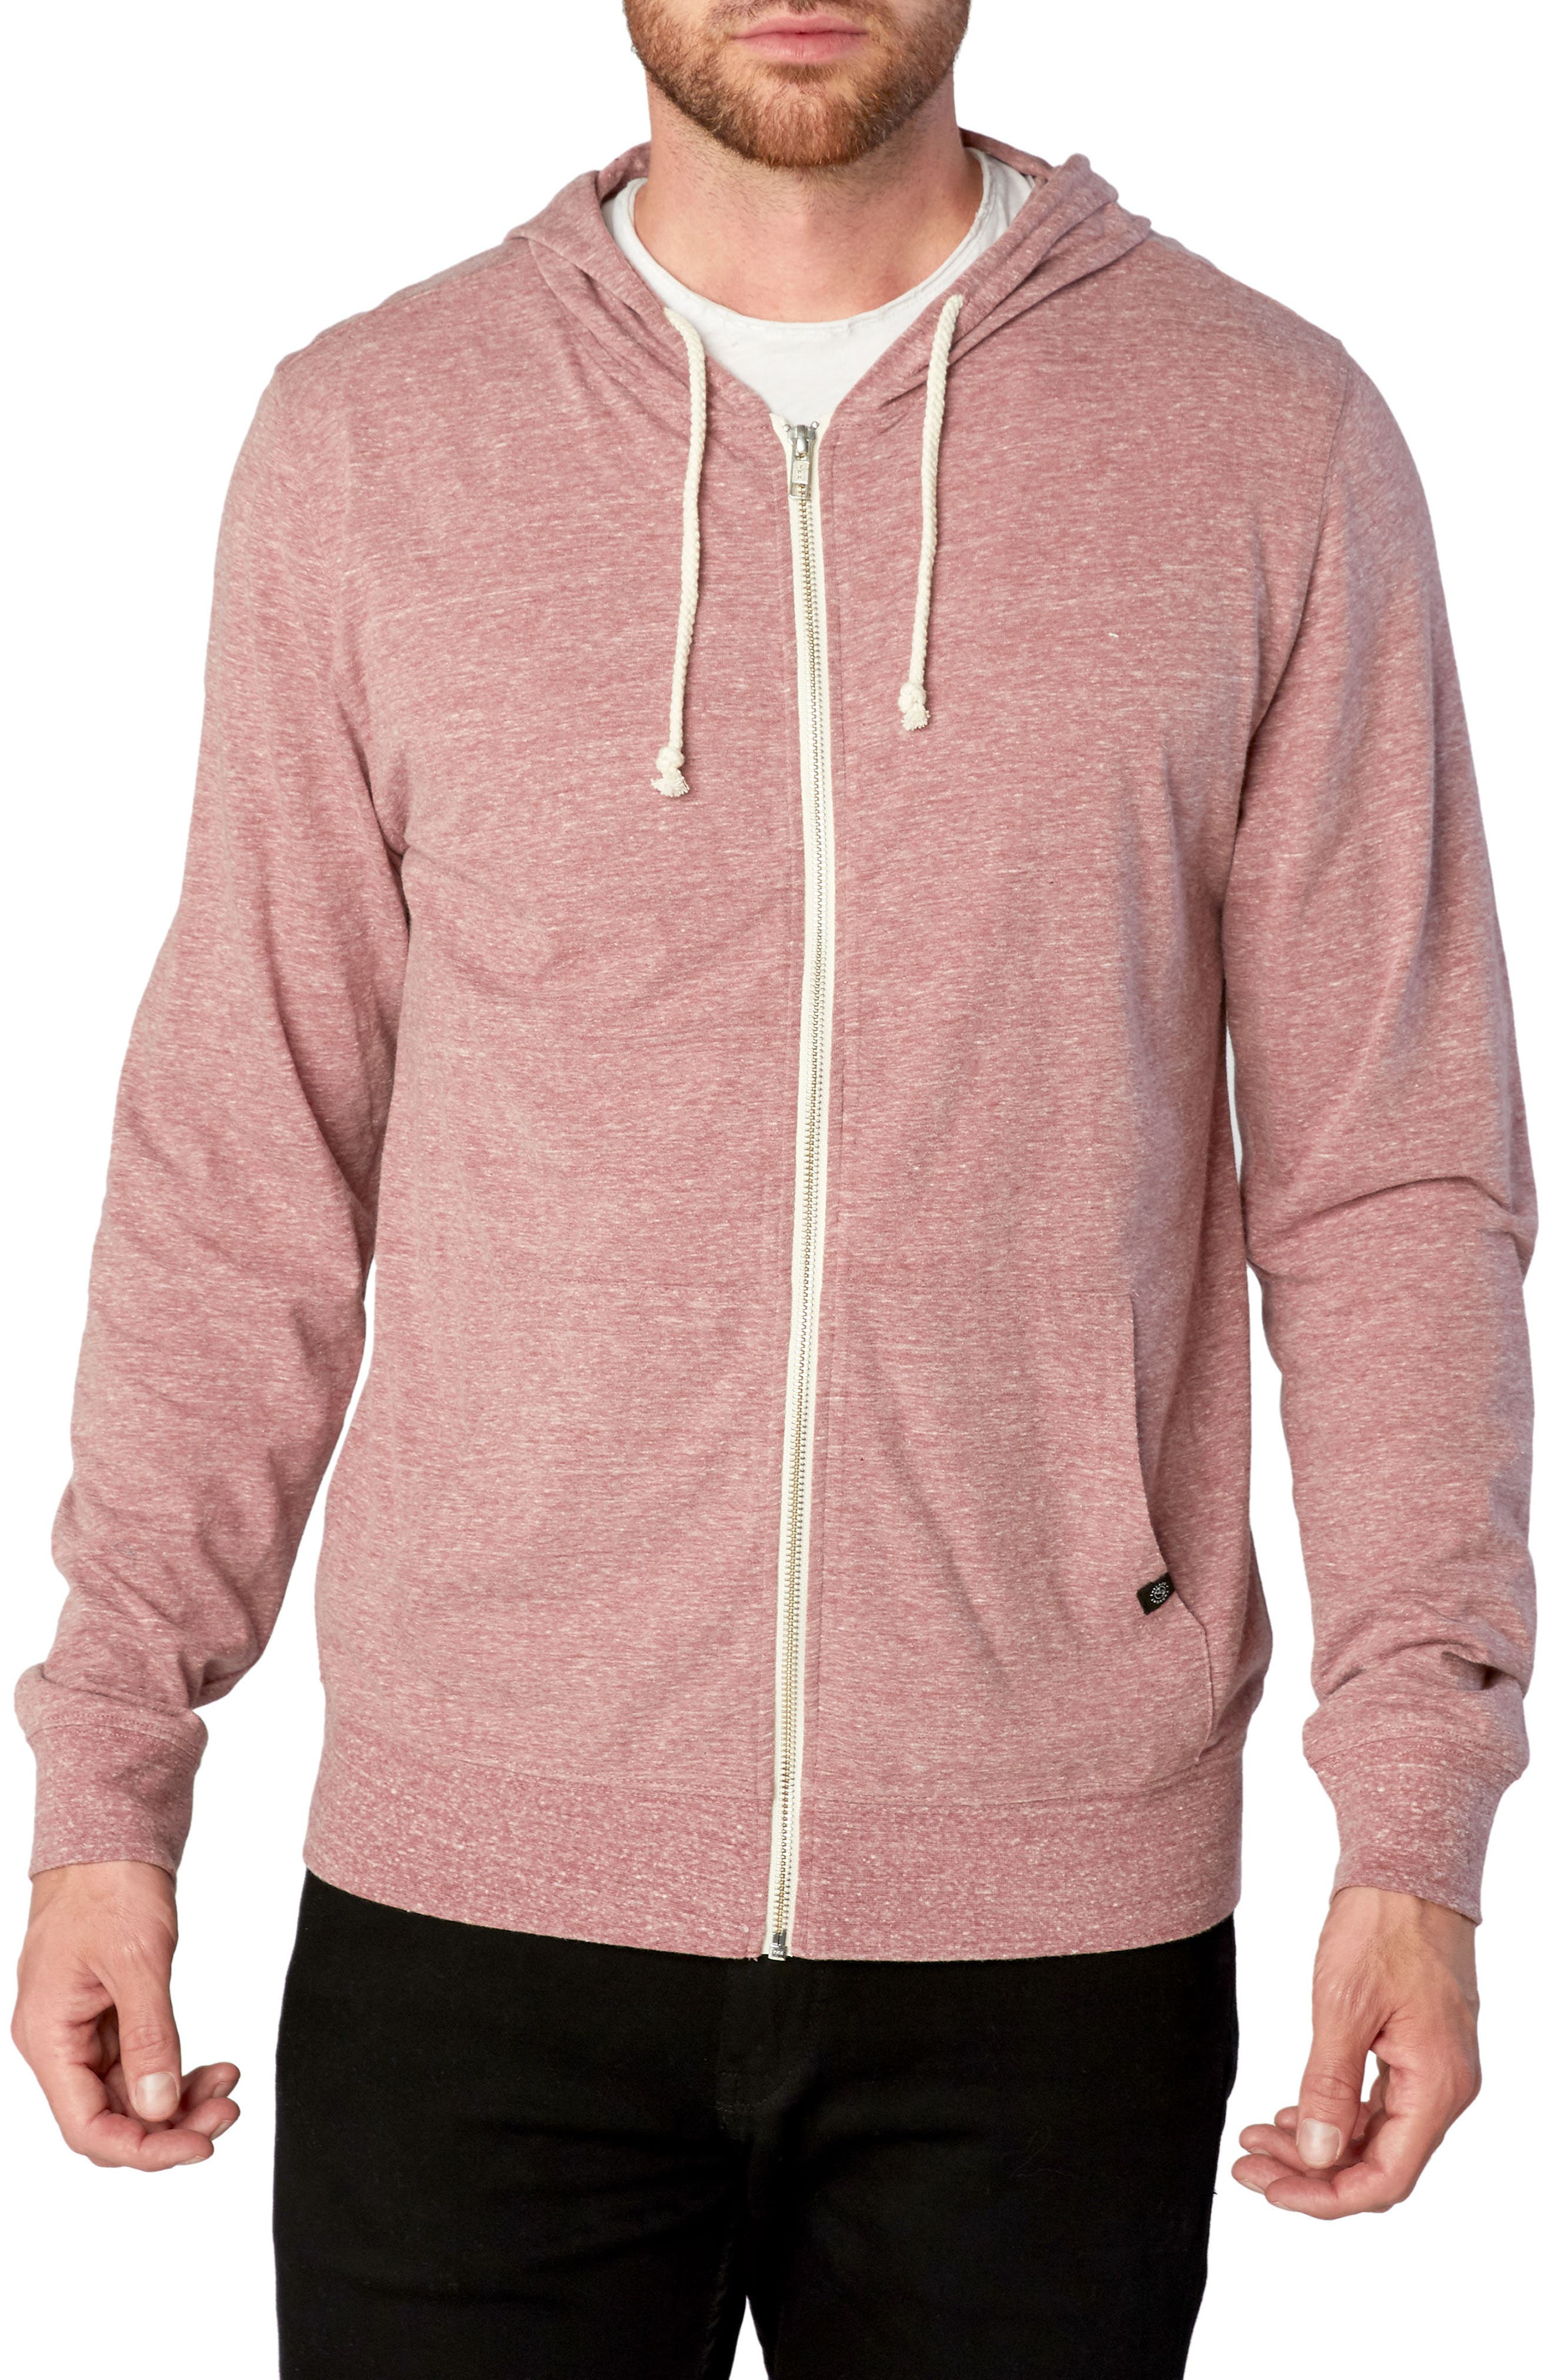 Threads for Thought Giulio Zip Hoodie,                             Main thumbnail 1, color,                             Brick Red